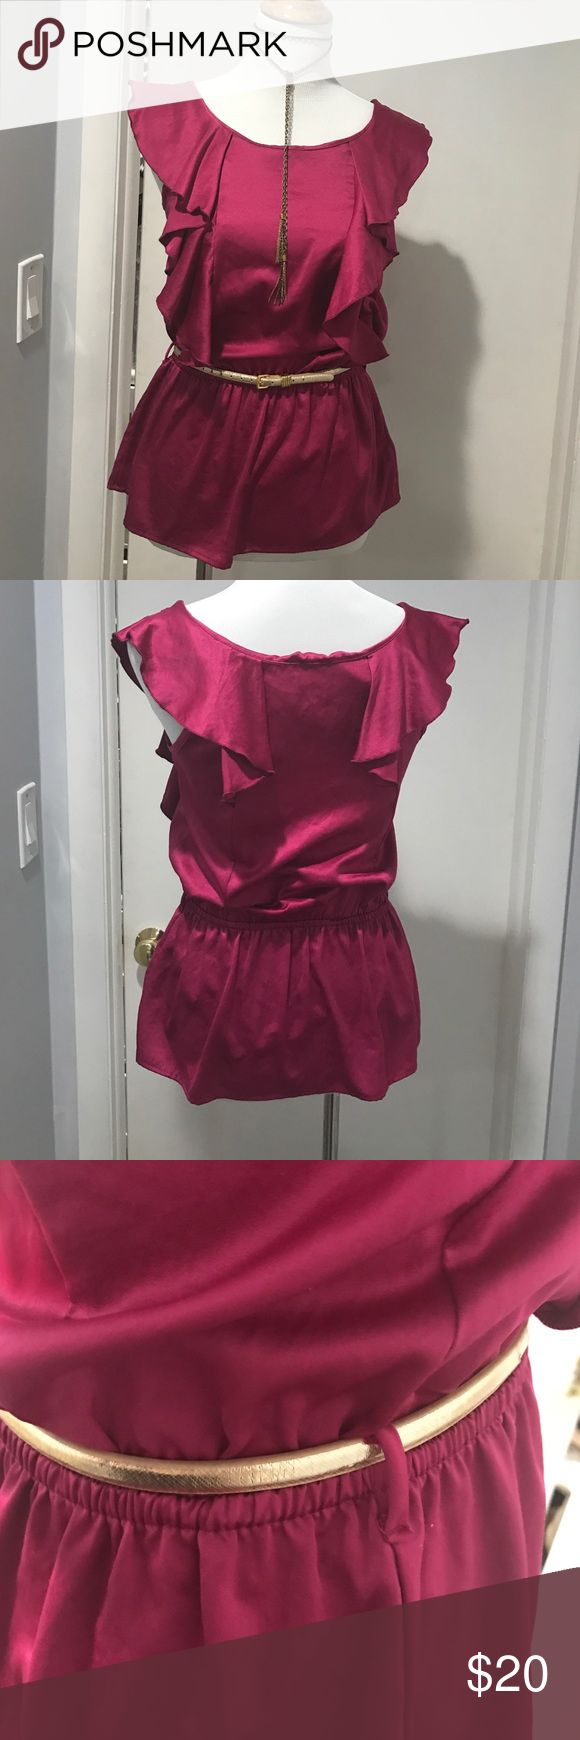 Hot pink shirt Hot pink shirt with skinny belt loops. Belts and jewelry not included. Tops Blouses